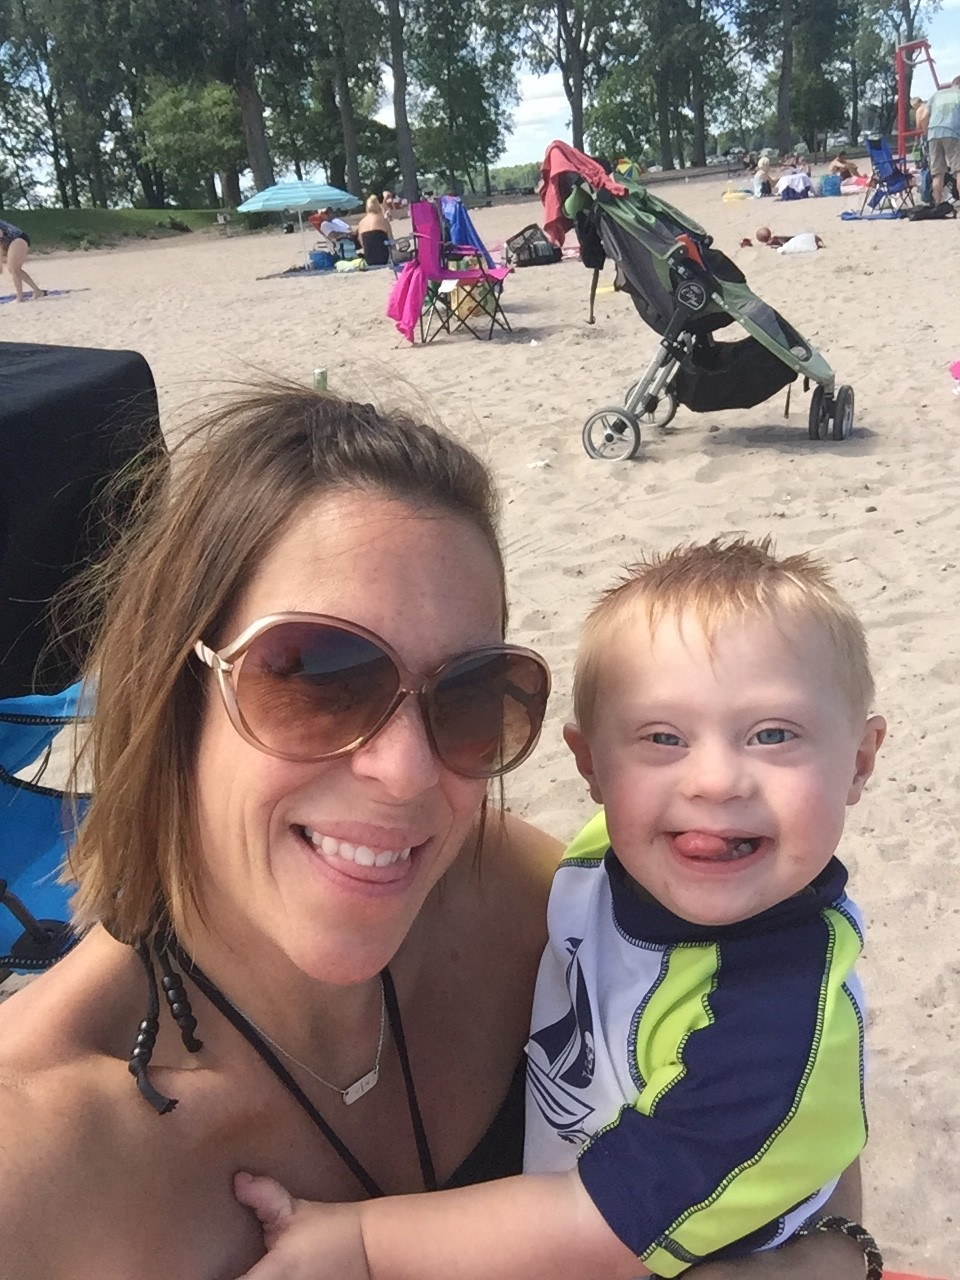 mom and little boy with down syndrome smiling at the beach